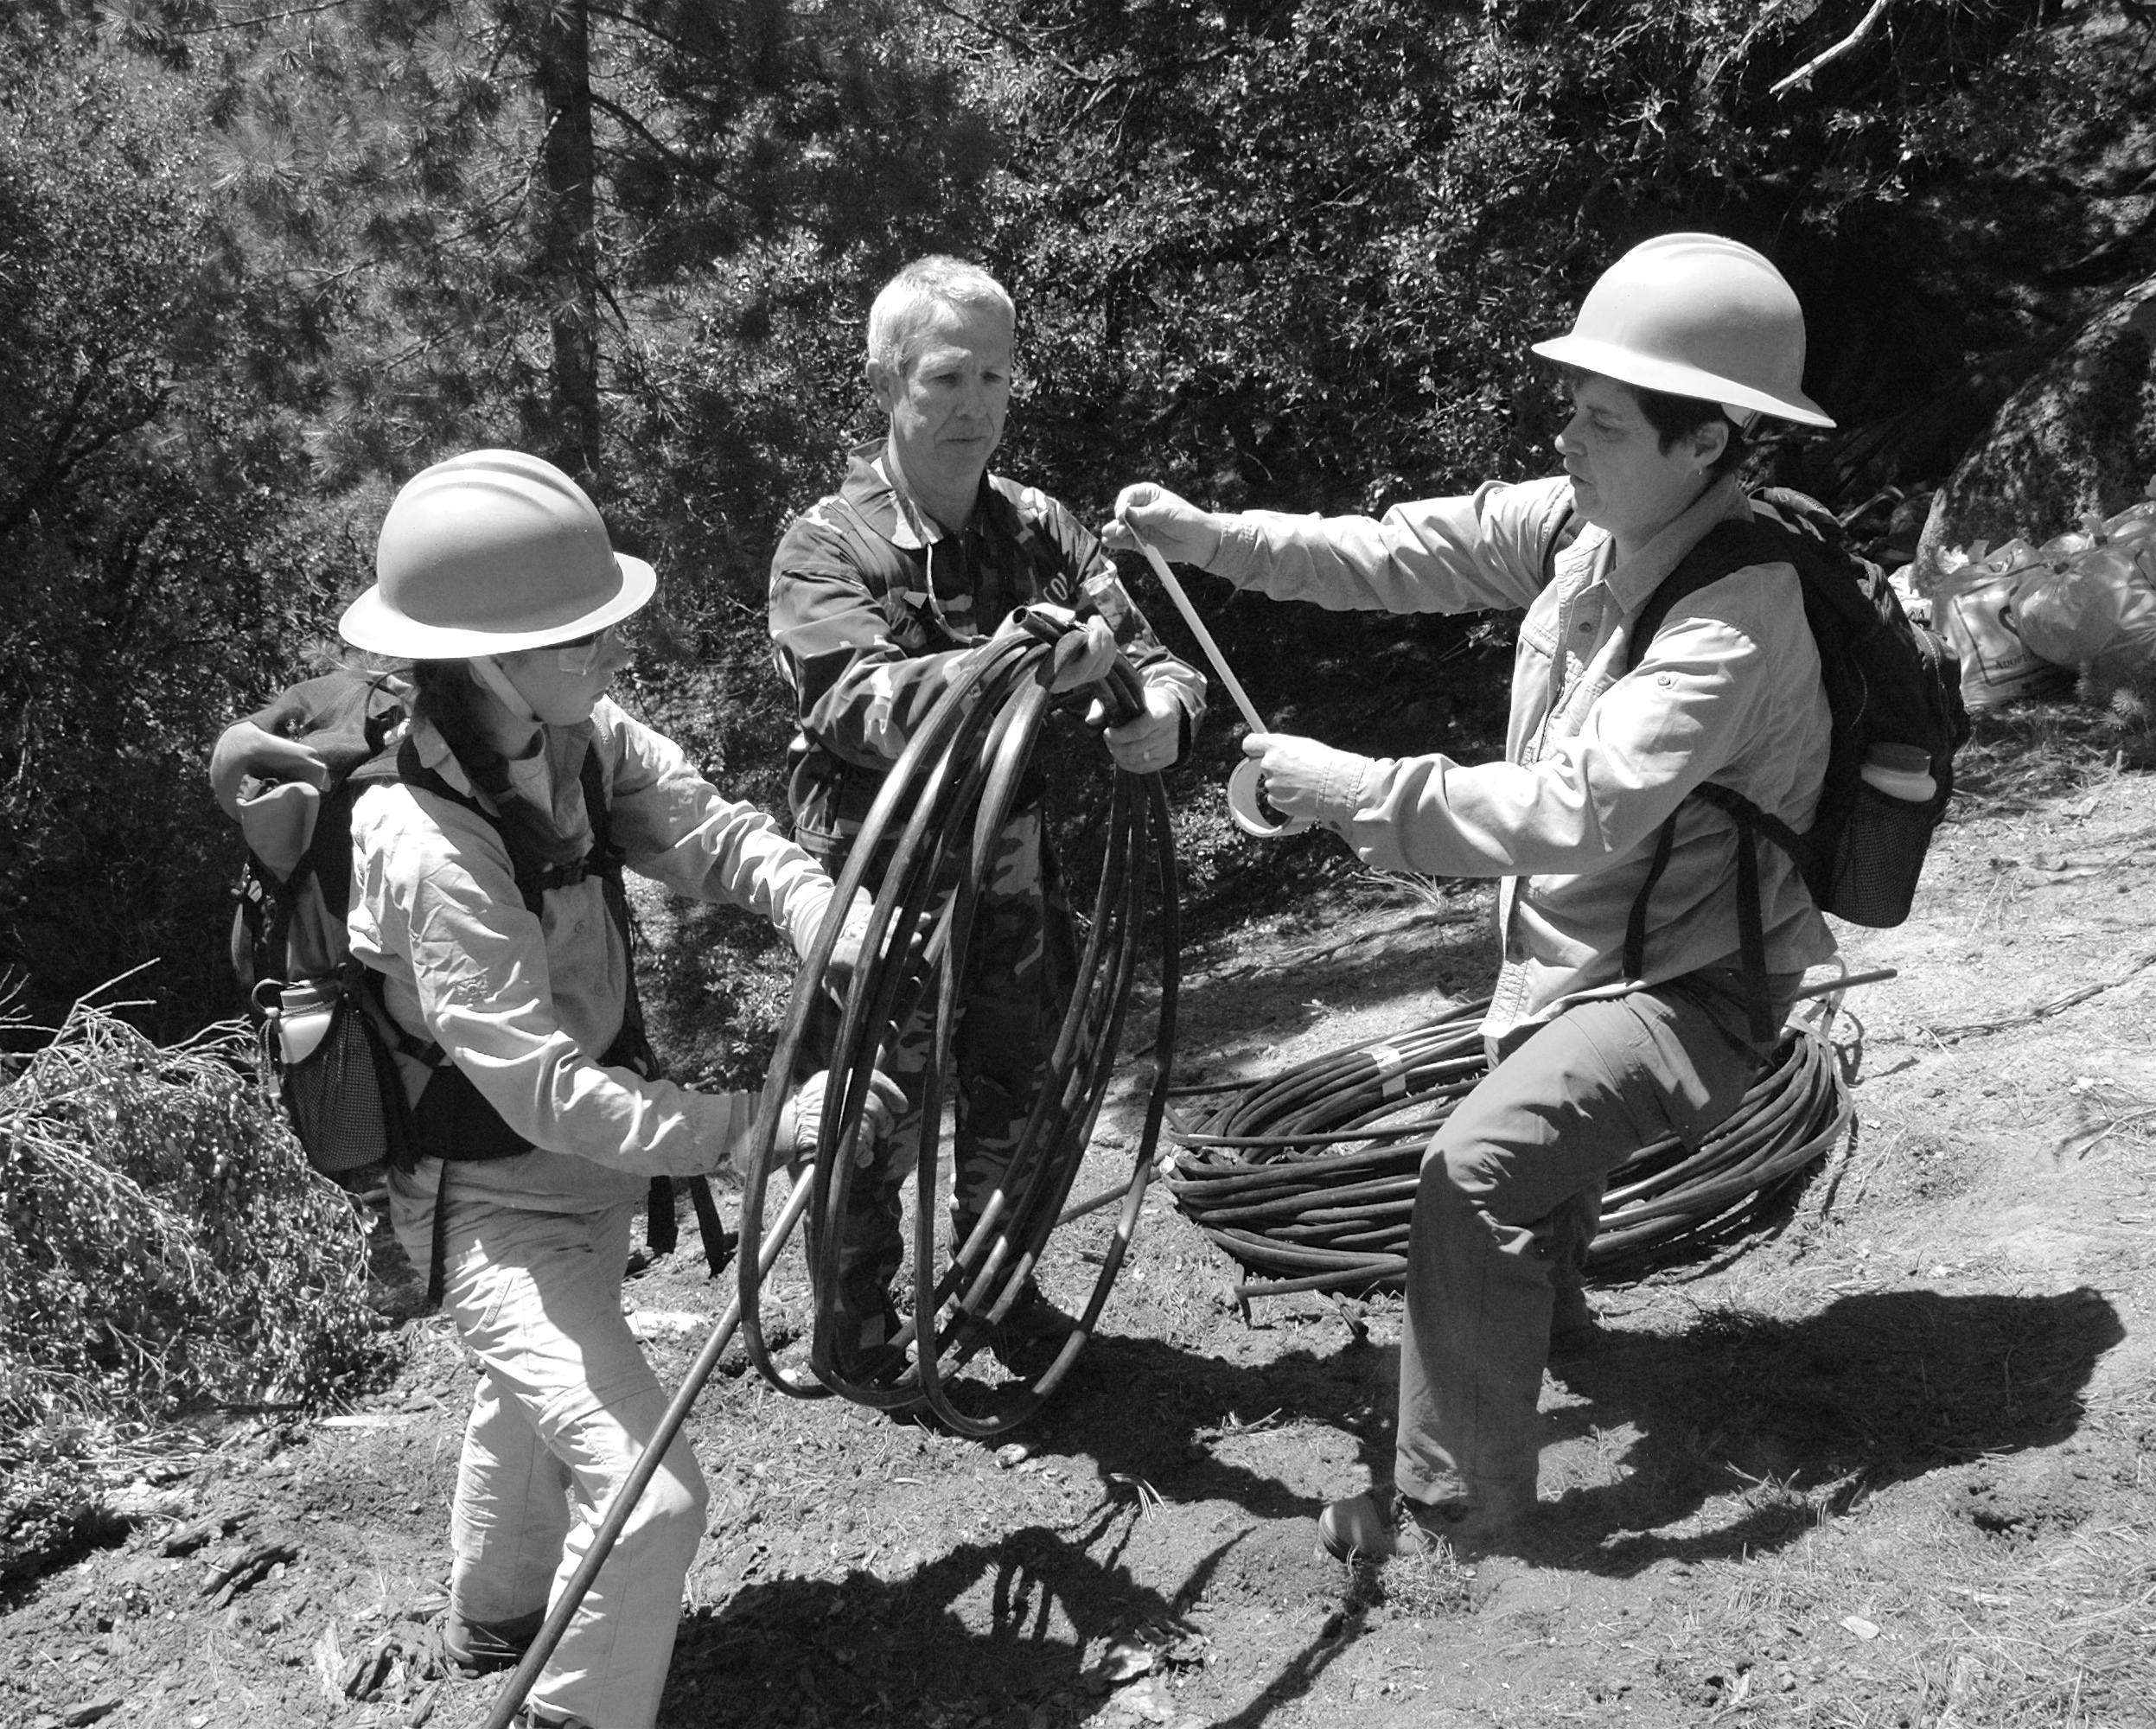 """""""We crawled on our hands and knees, following the black pipe from one abandoned campsite to another. Volunteers gingerly picked up rotting trash, rolled up irrigation pipe and gathered bags for California Highway Helicopter H-40 to haul away."""""""